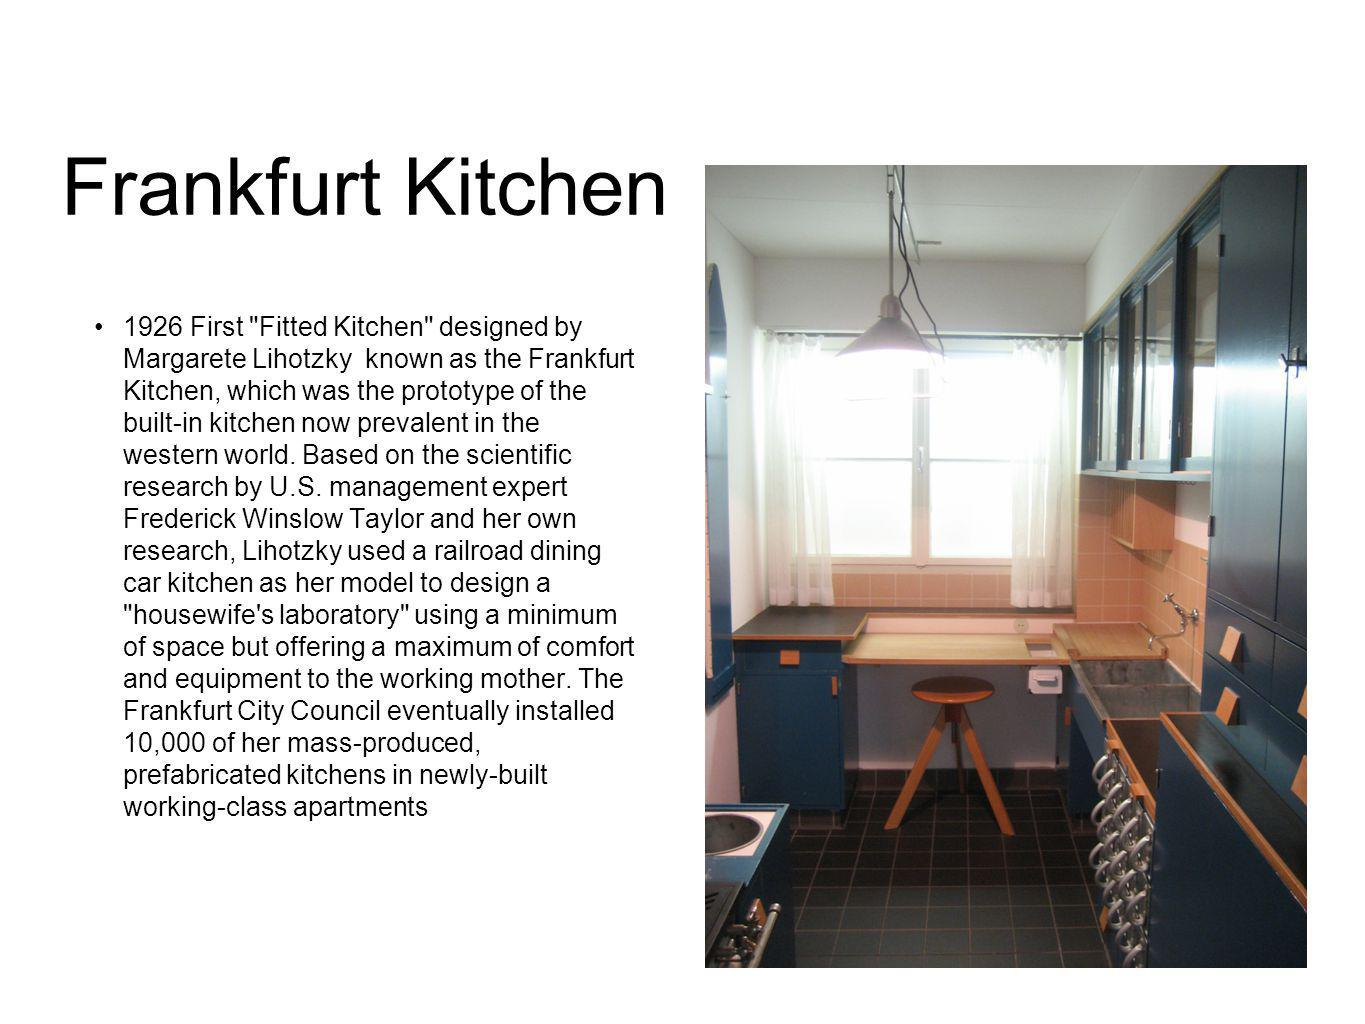 Frankfurt Kitchen 1926 First Fitted Kitchen designed by Margarete Lihotzky known as the Frankfurt Kitchen, which was the prototype of the built-in kitchen now prevalent in the western world.